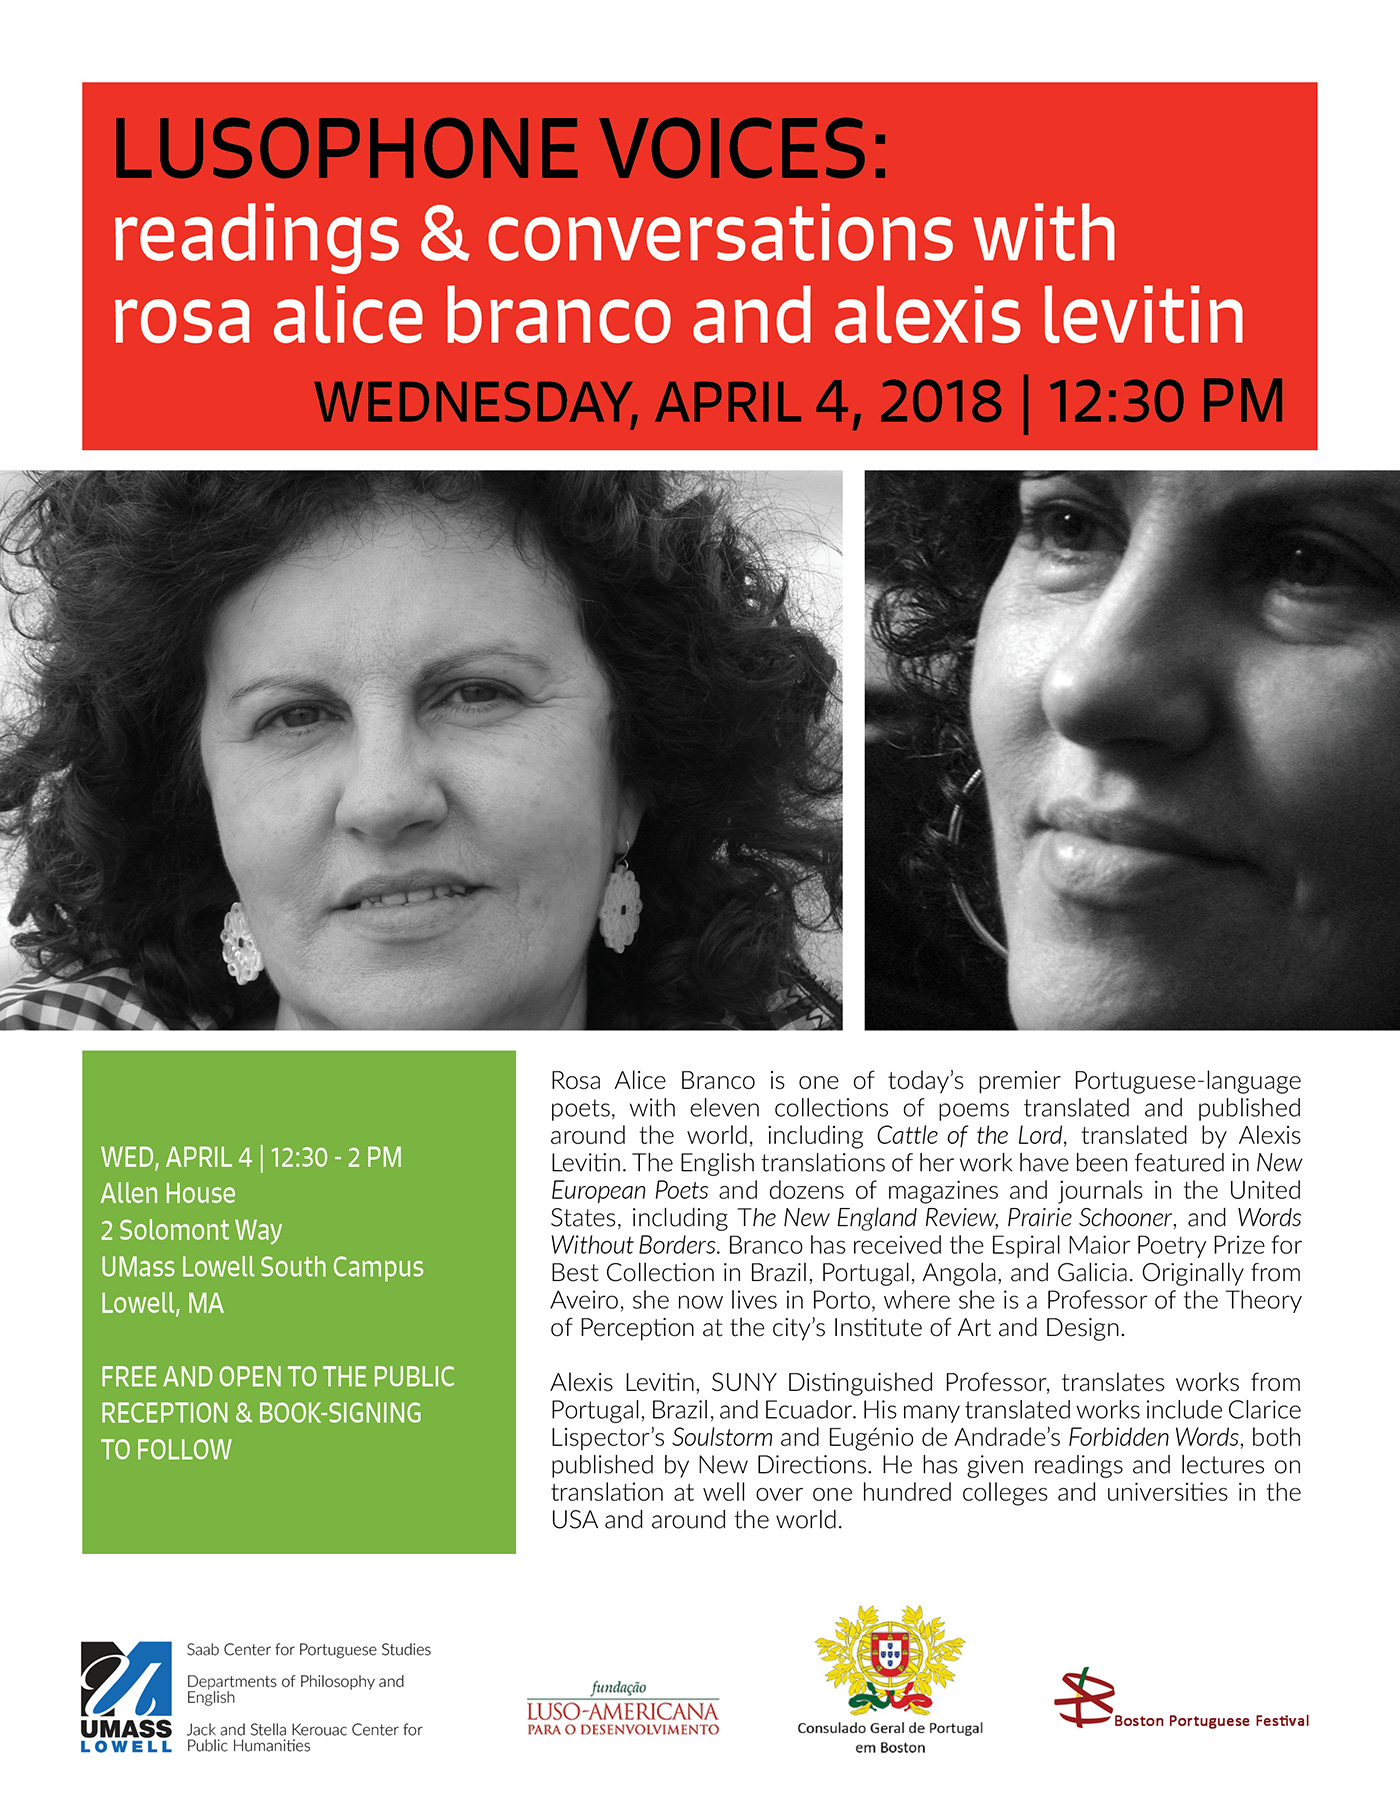 Lusophone Voices: Readings E Conversations with Rosa Alice Branco and Alexis Levitin. Wednesday, April 4, 2018 at 12:30 p.m.  Allen House, 2 Solomont Way, UMass Lowell South Campus, Lowell, MA  FREE AND OPEN TO THE PUBLIC RECEPTION & BOOK-SIGNING TO FOLLOW.